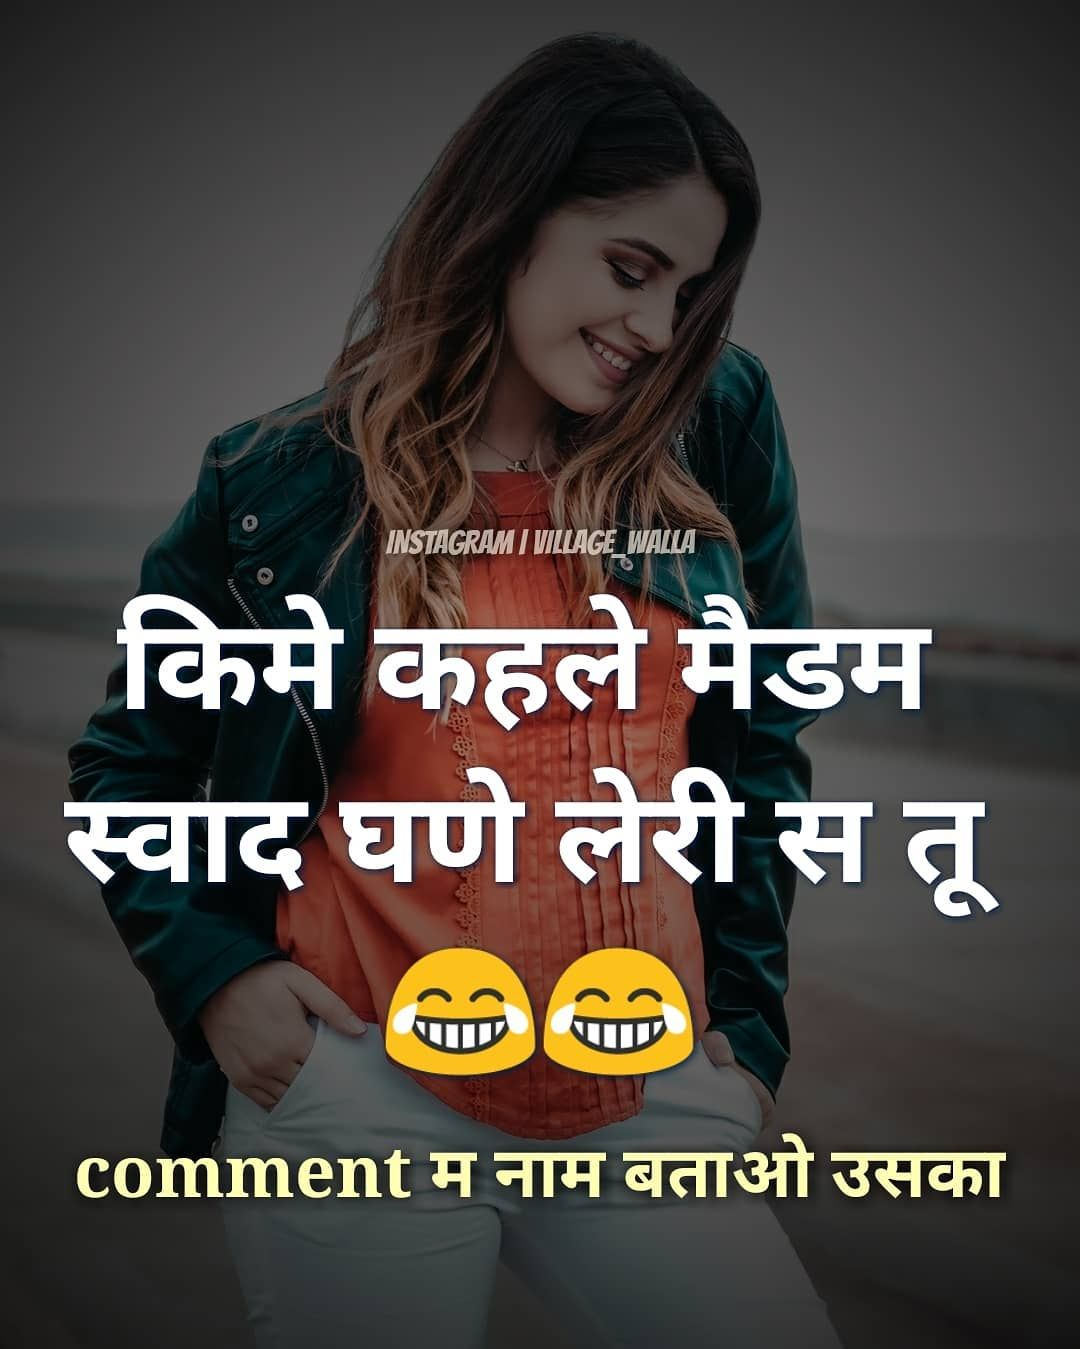 Desi Comment : comment, Smile☺jii.., Quotes,, Funny, Quotes, Whatsapp,